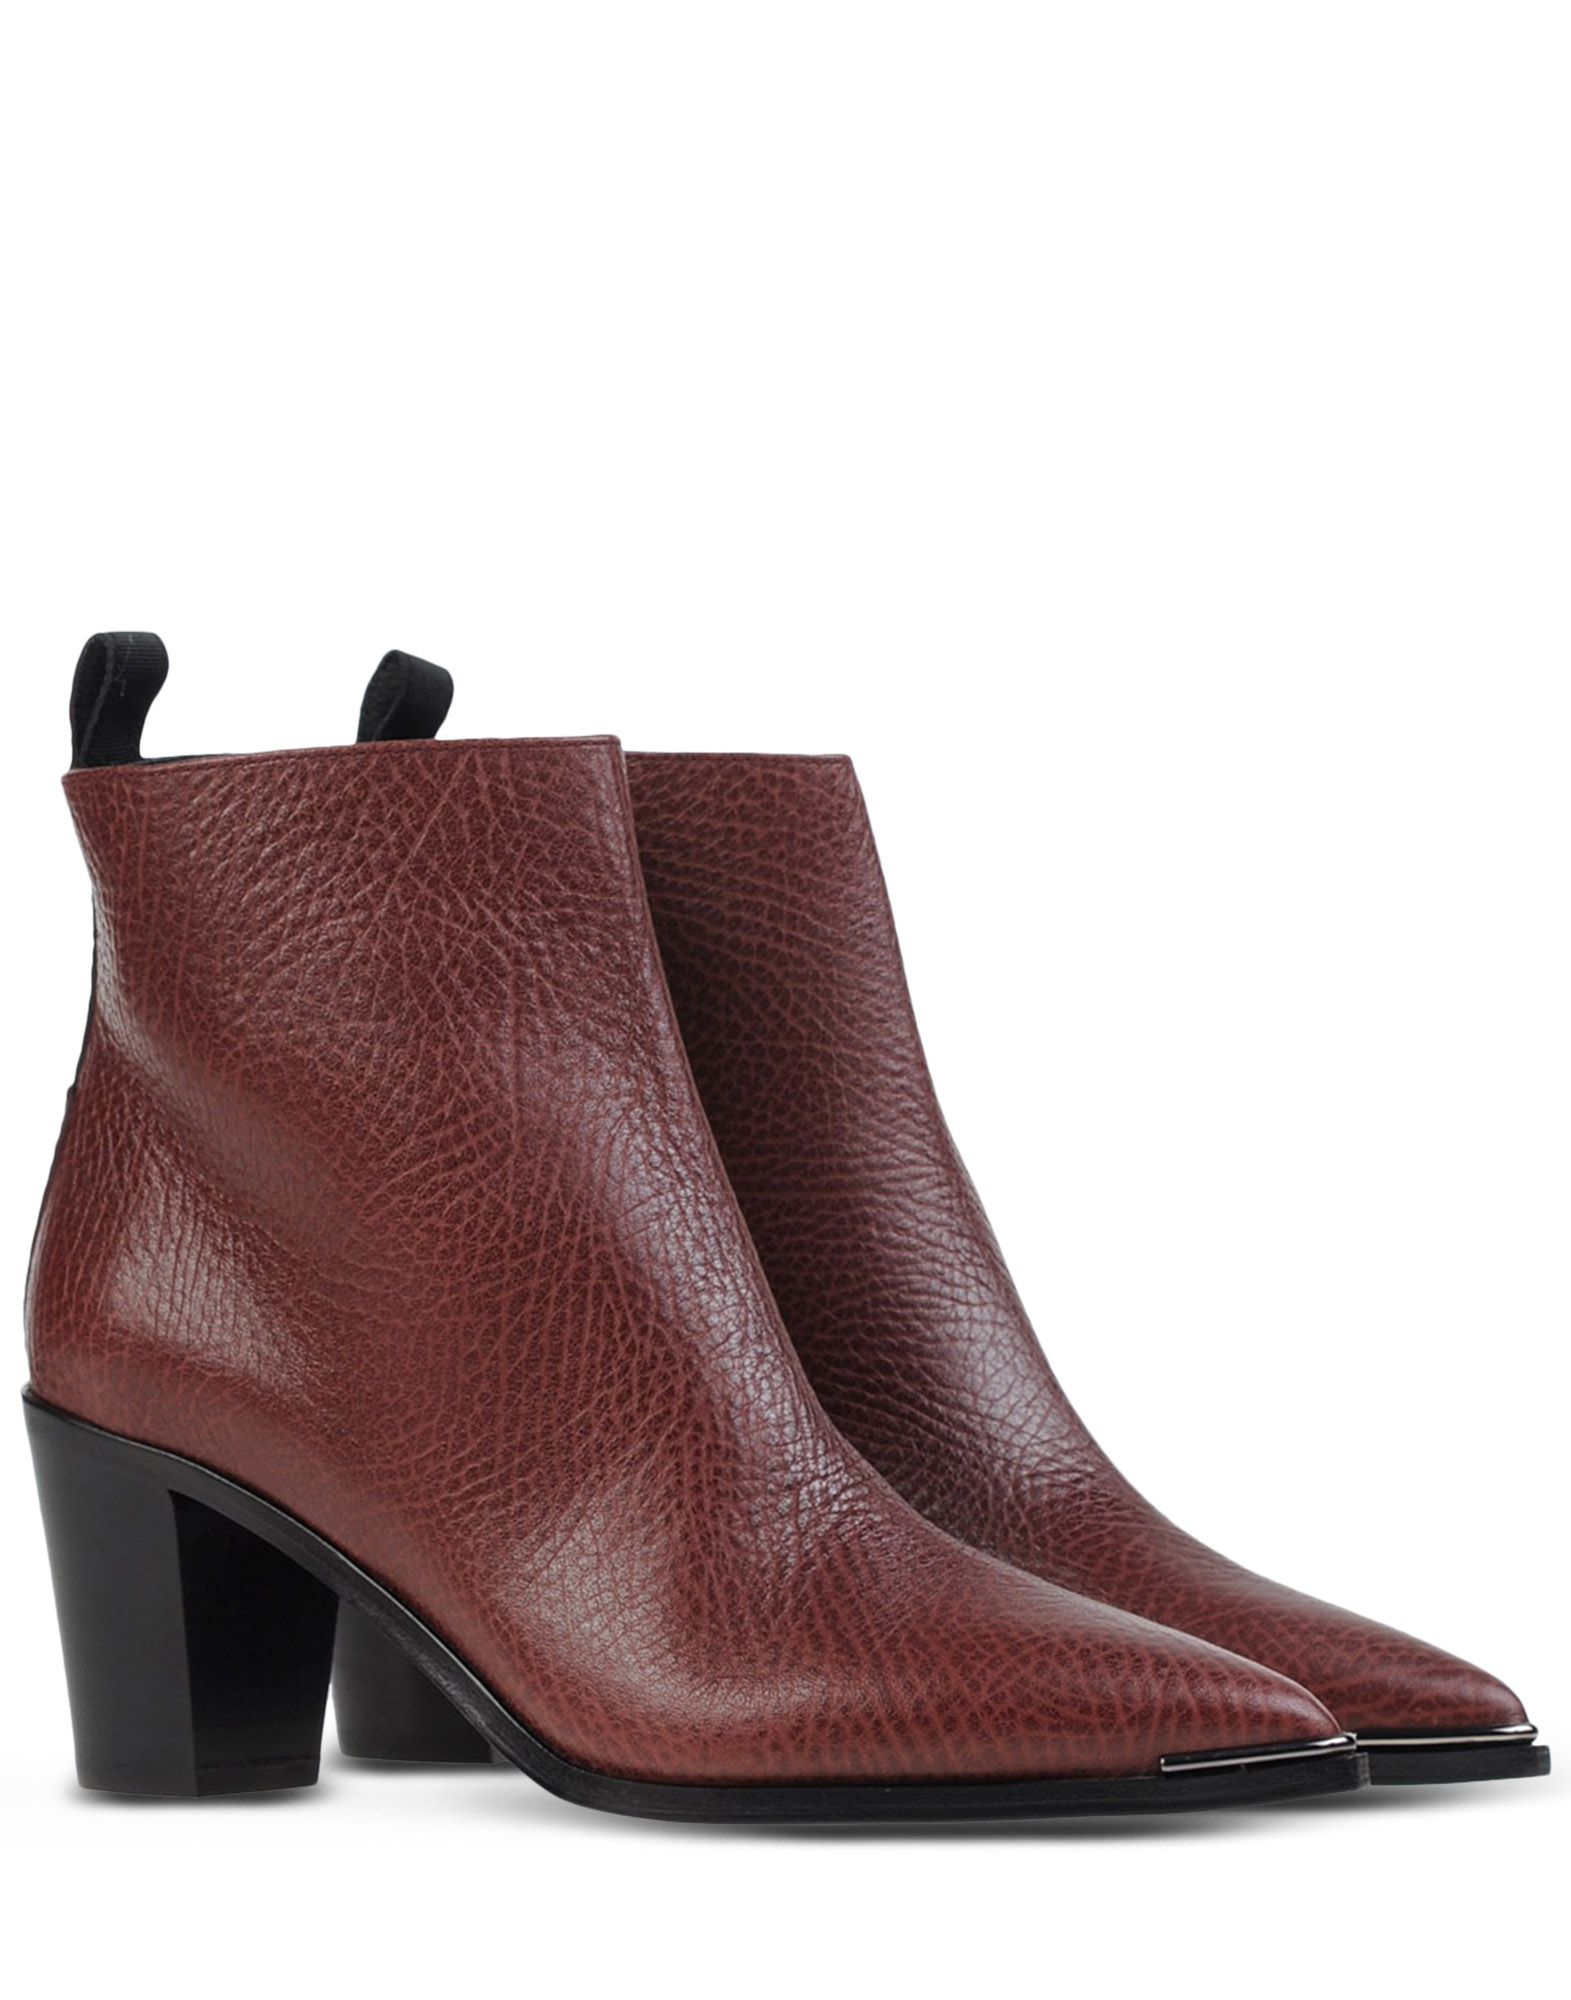 Acne Textured-Leather Ankle Boots in Purple (Maroon)